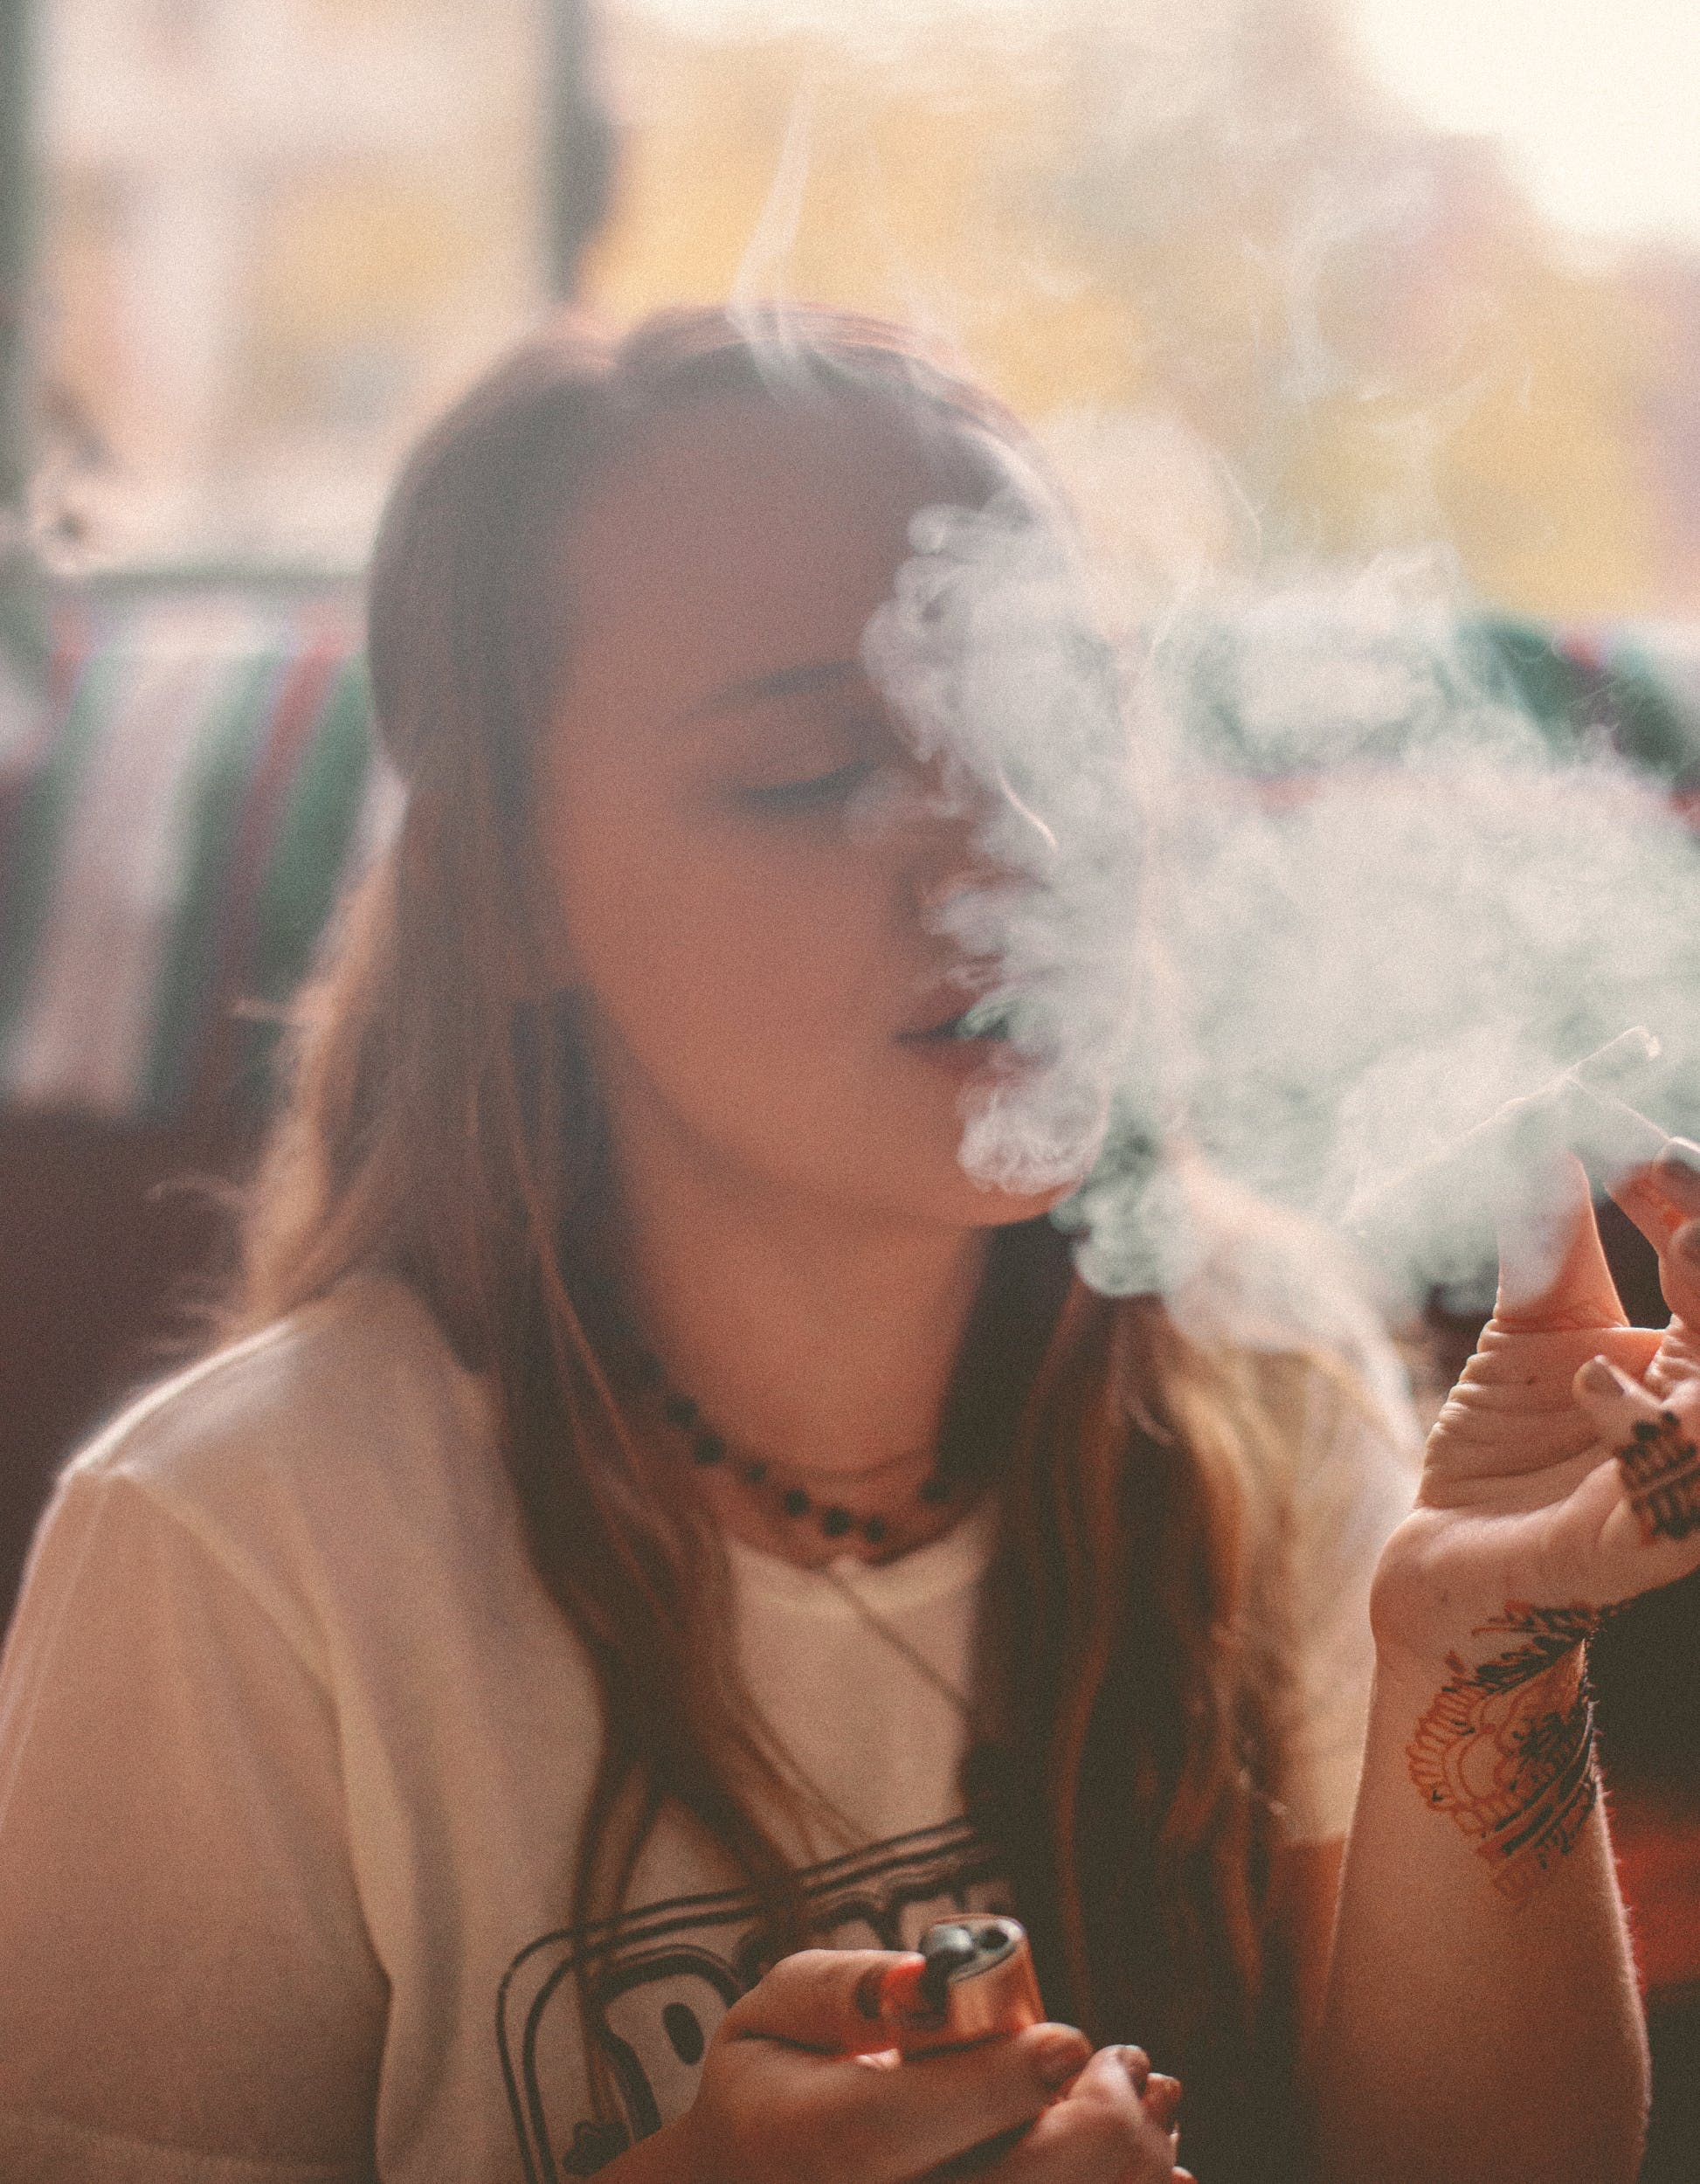 Best Weed Strains 26 2 These are the Best Weed Strains in the World